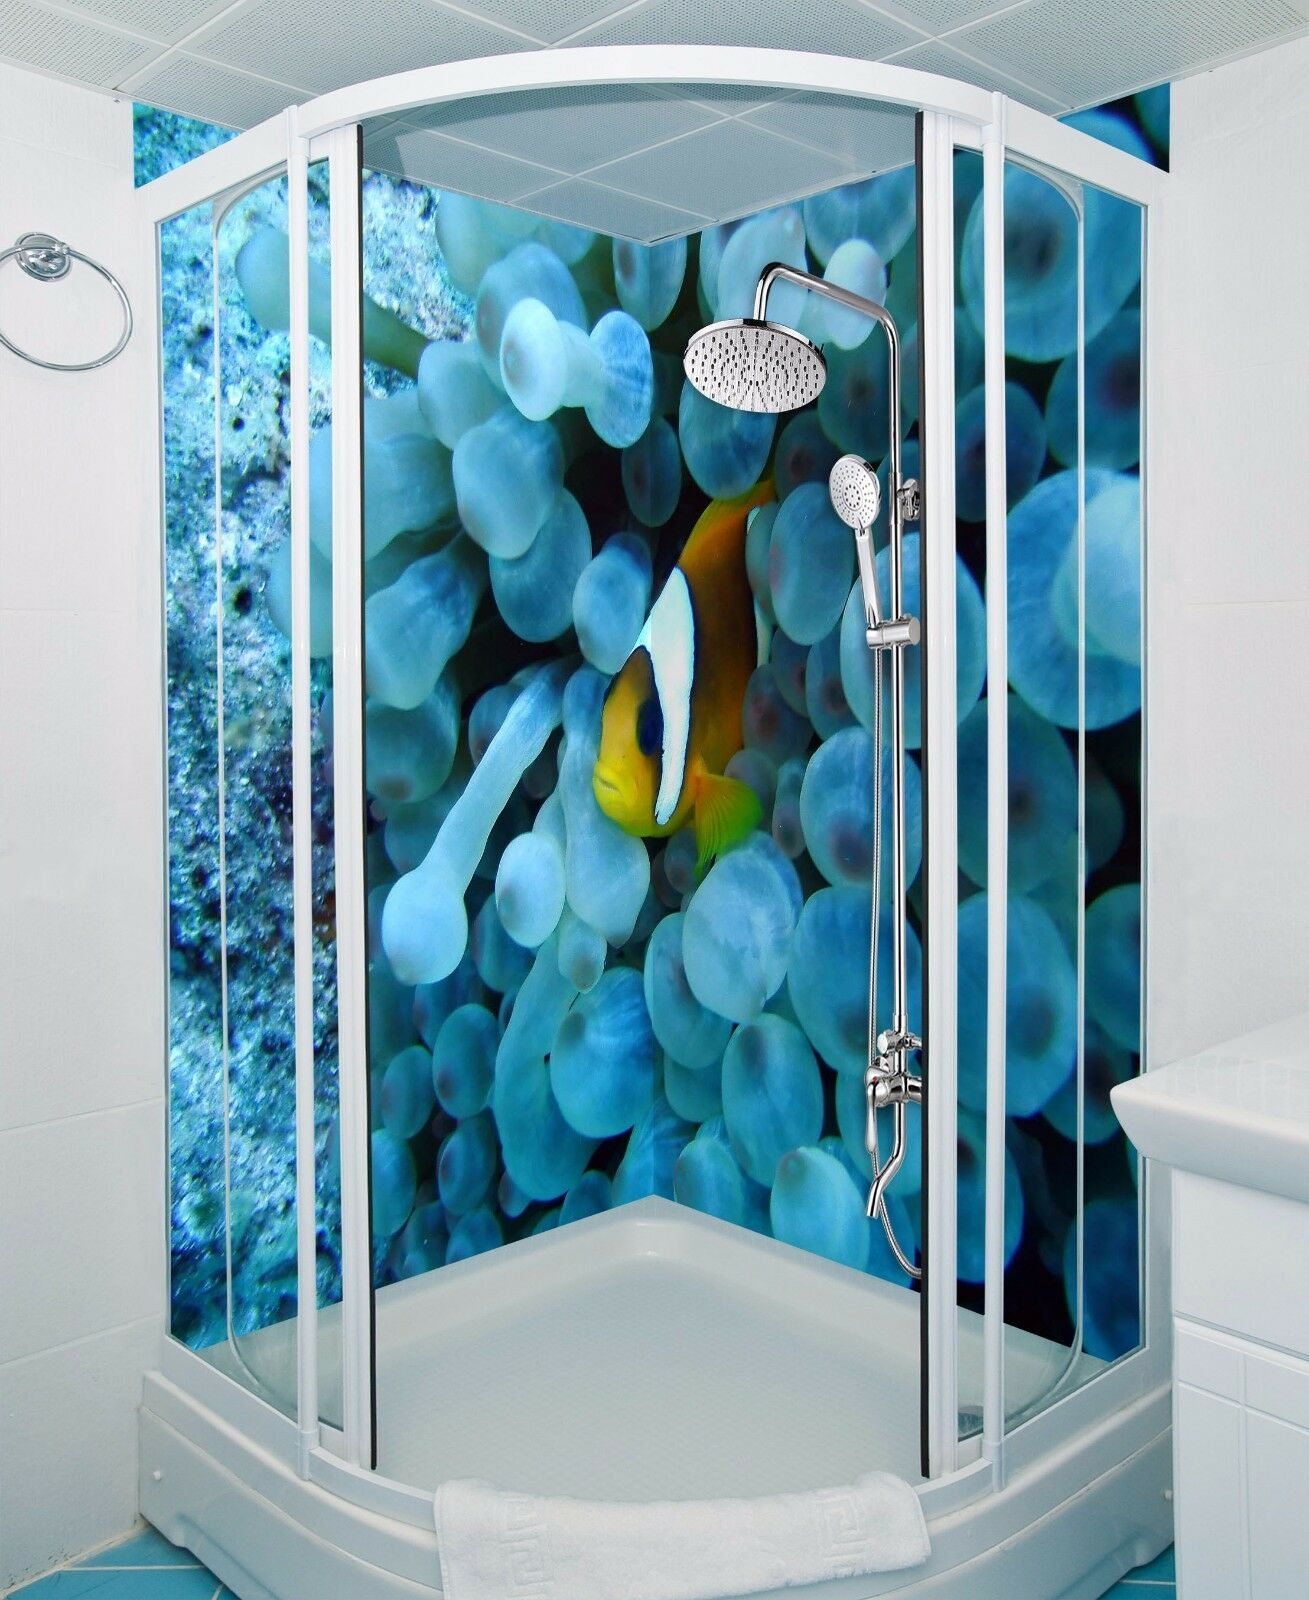 Wallpaper Murals For Bathrooms 3d 7074 Wallpaper Bathroom Print Decal Wall Deco Aj Wallpaper Au